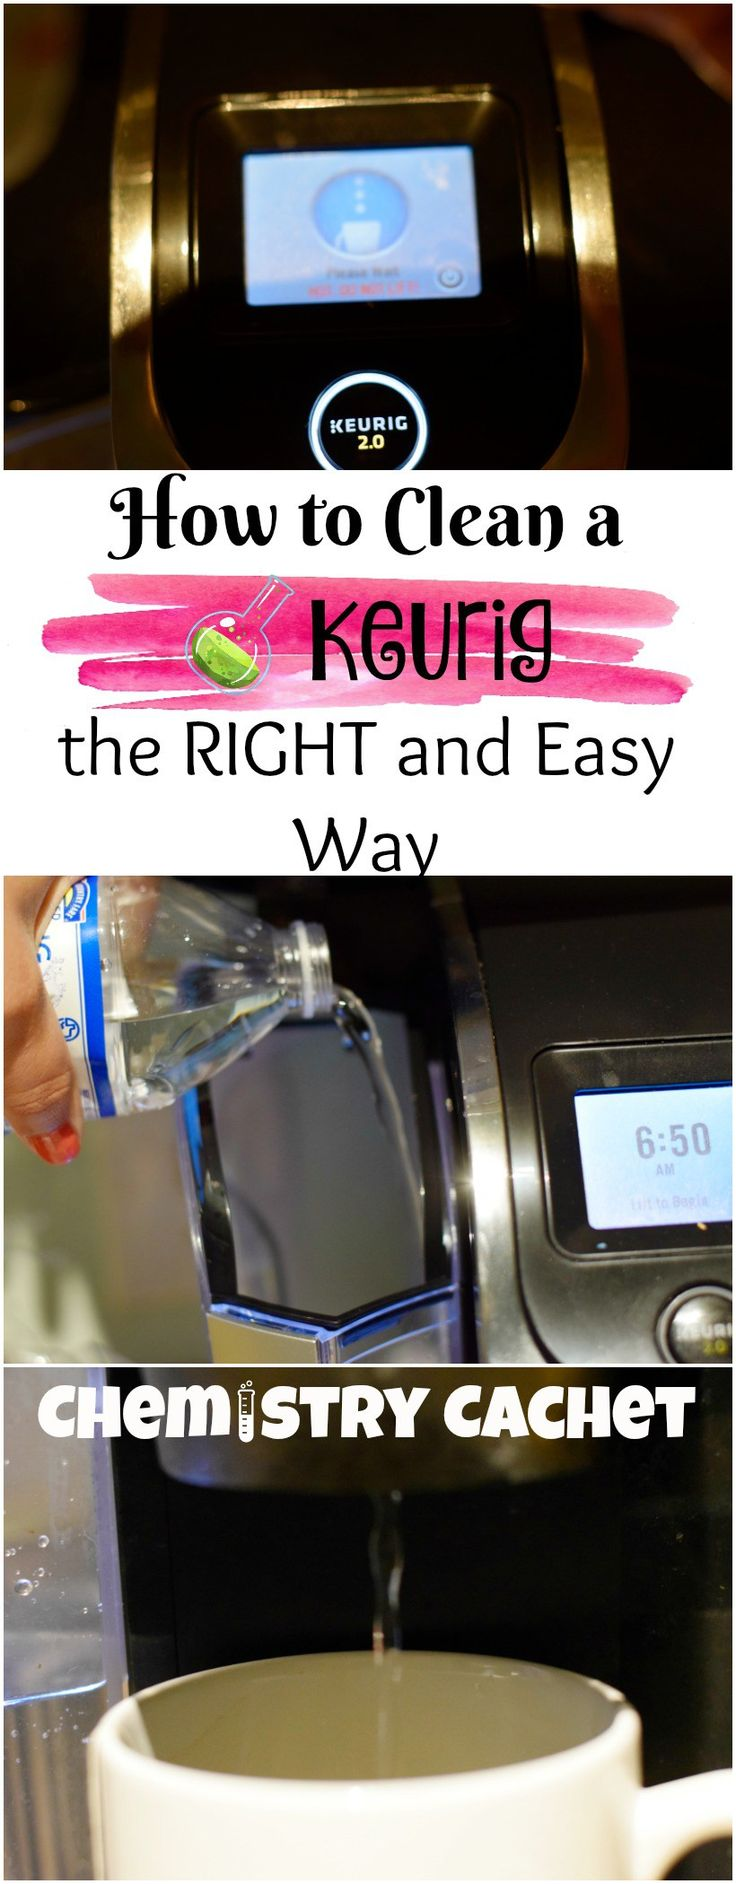 How to clean my Keurig, the right and easy way! Clean a keurig machine on chemistrycachet.com